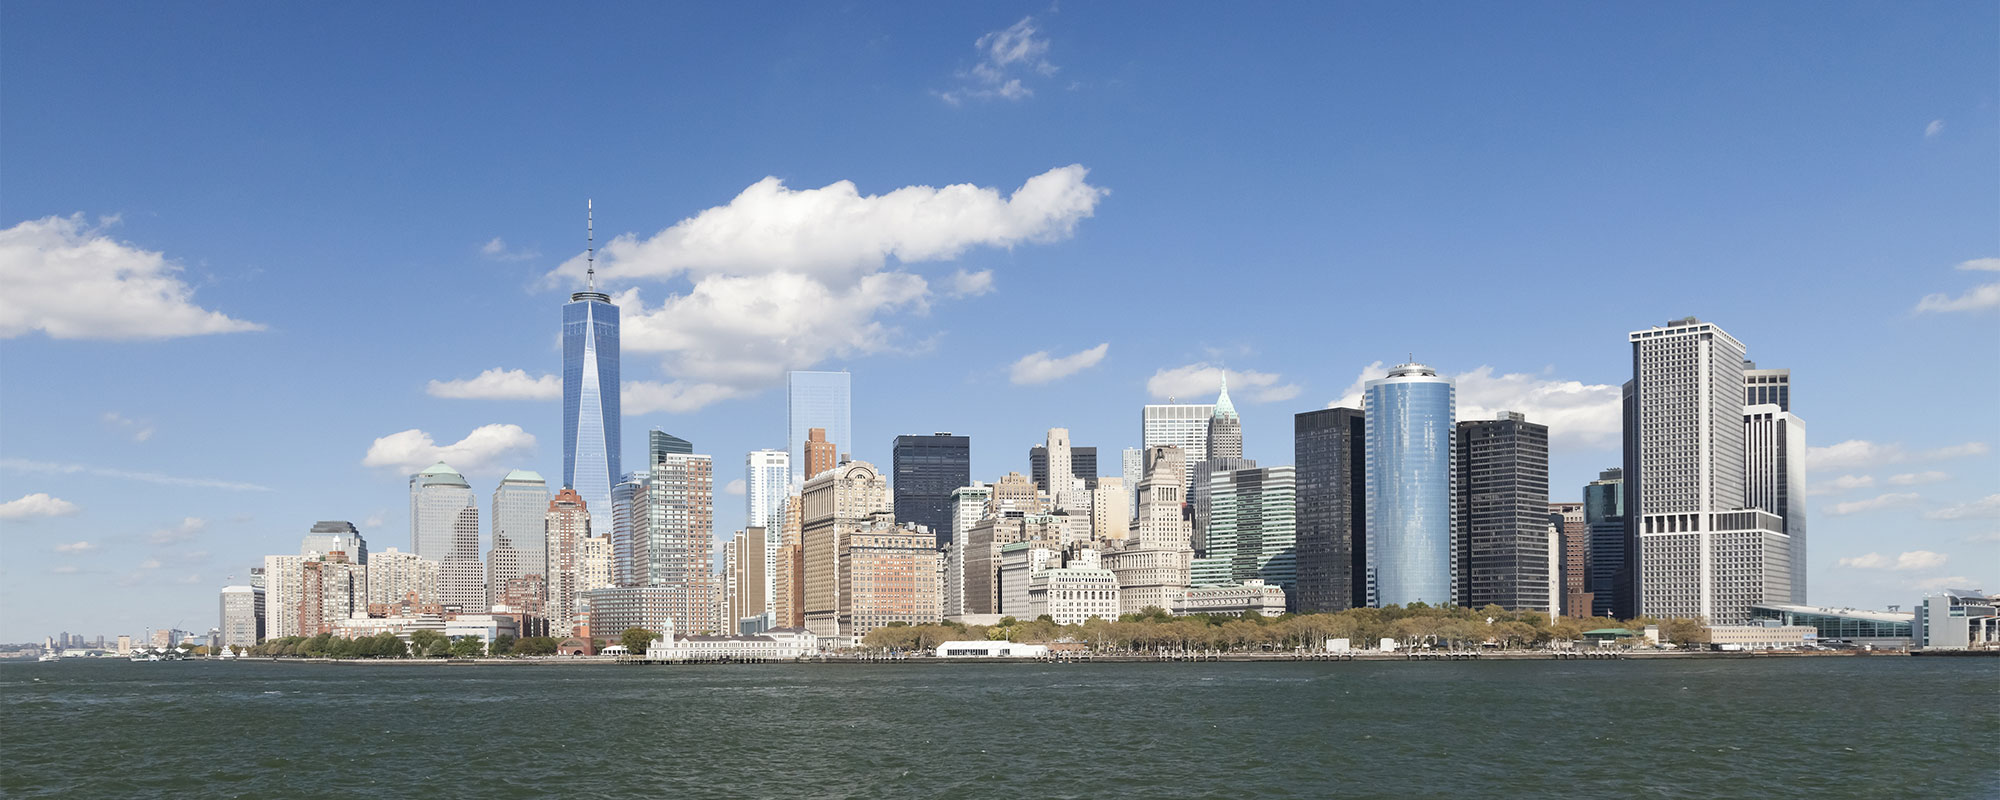 Ocean View of New York | Low Rate Commercial Mortgage